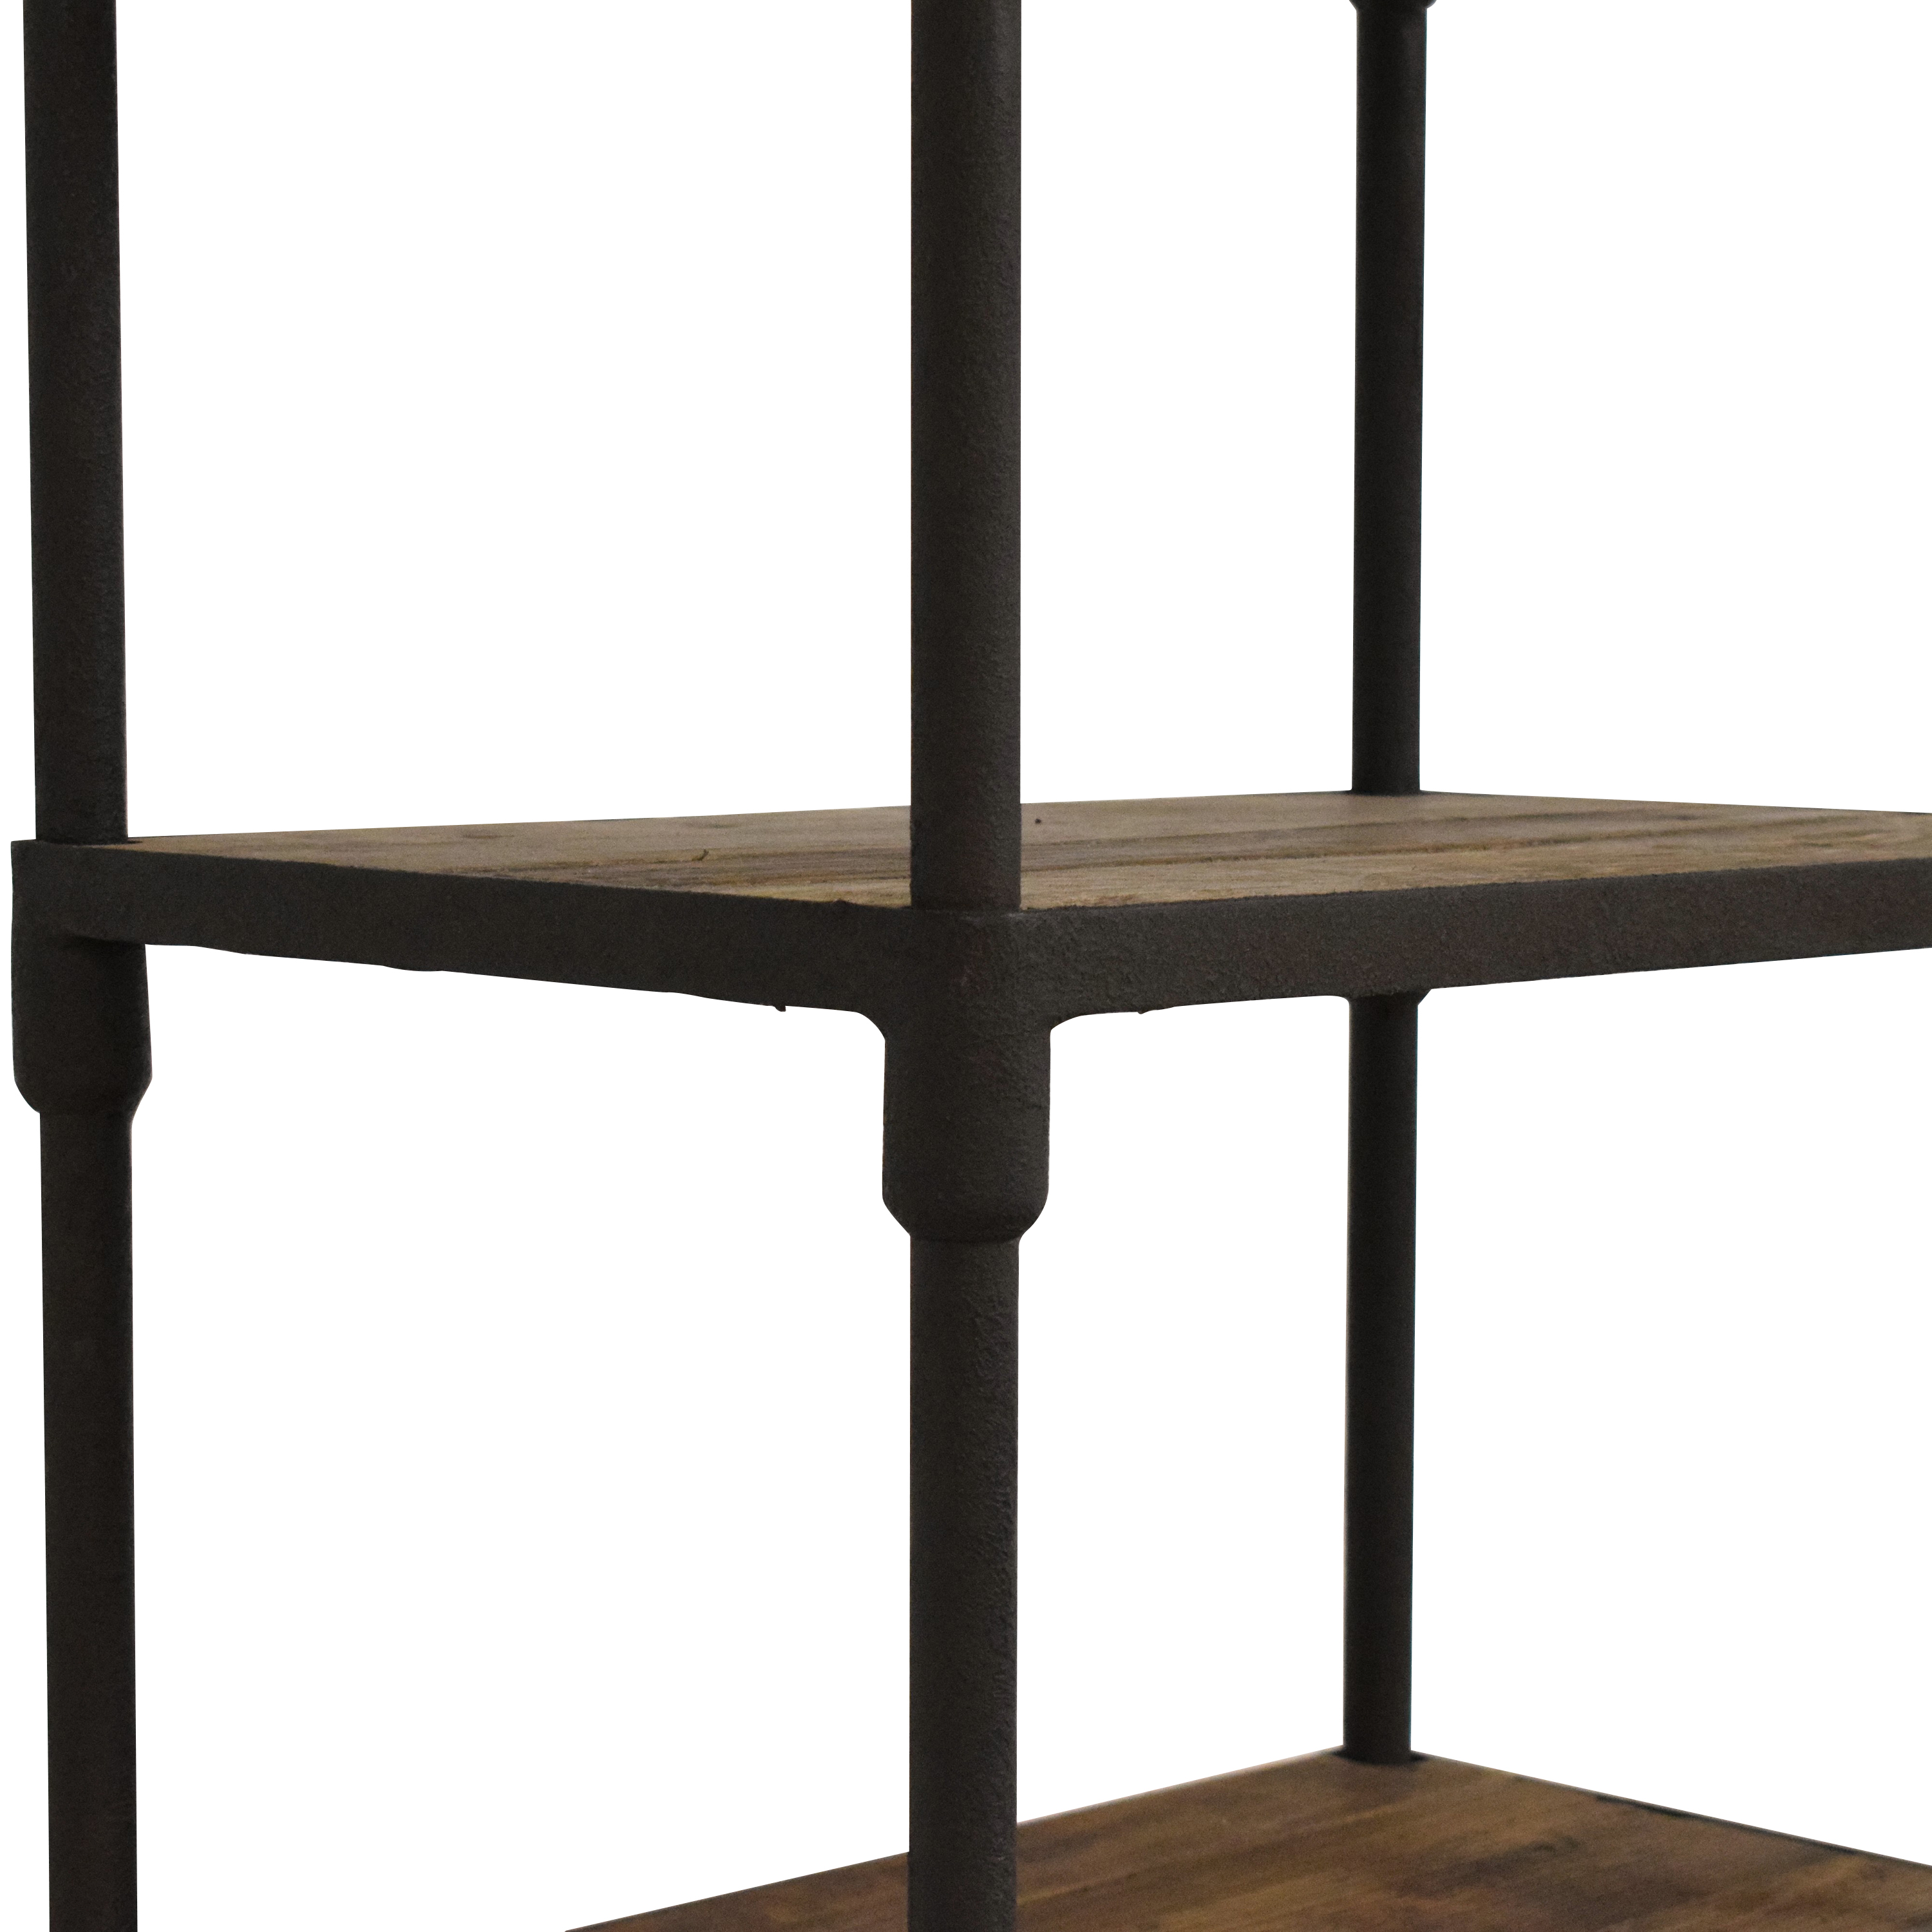 Restoration Hardware Restoration Hardware Dutch Industrial Tower coupon